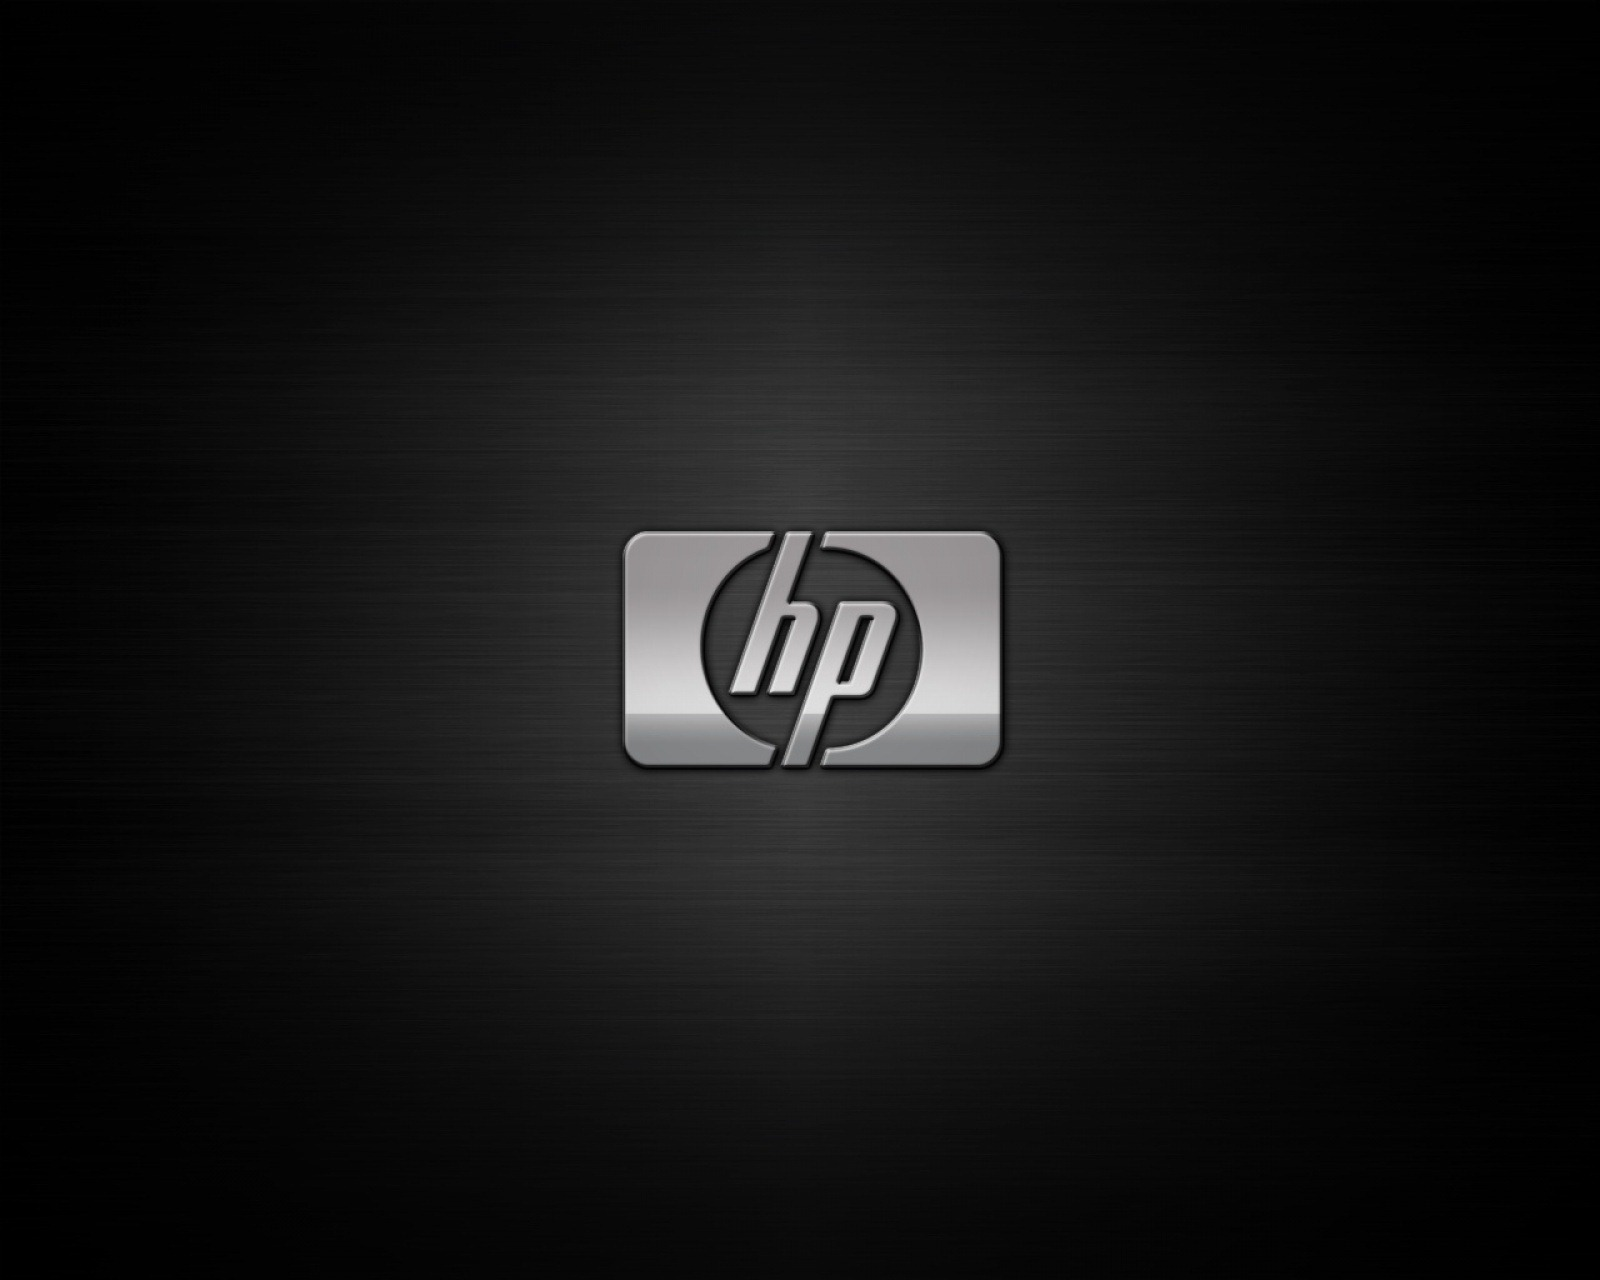 Hp HD Wallpapers For Windows 7